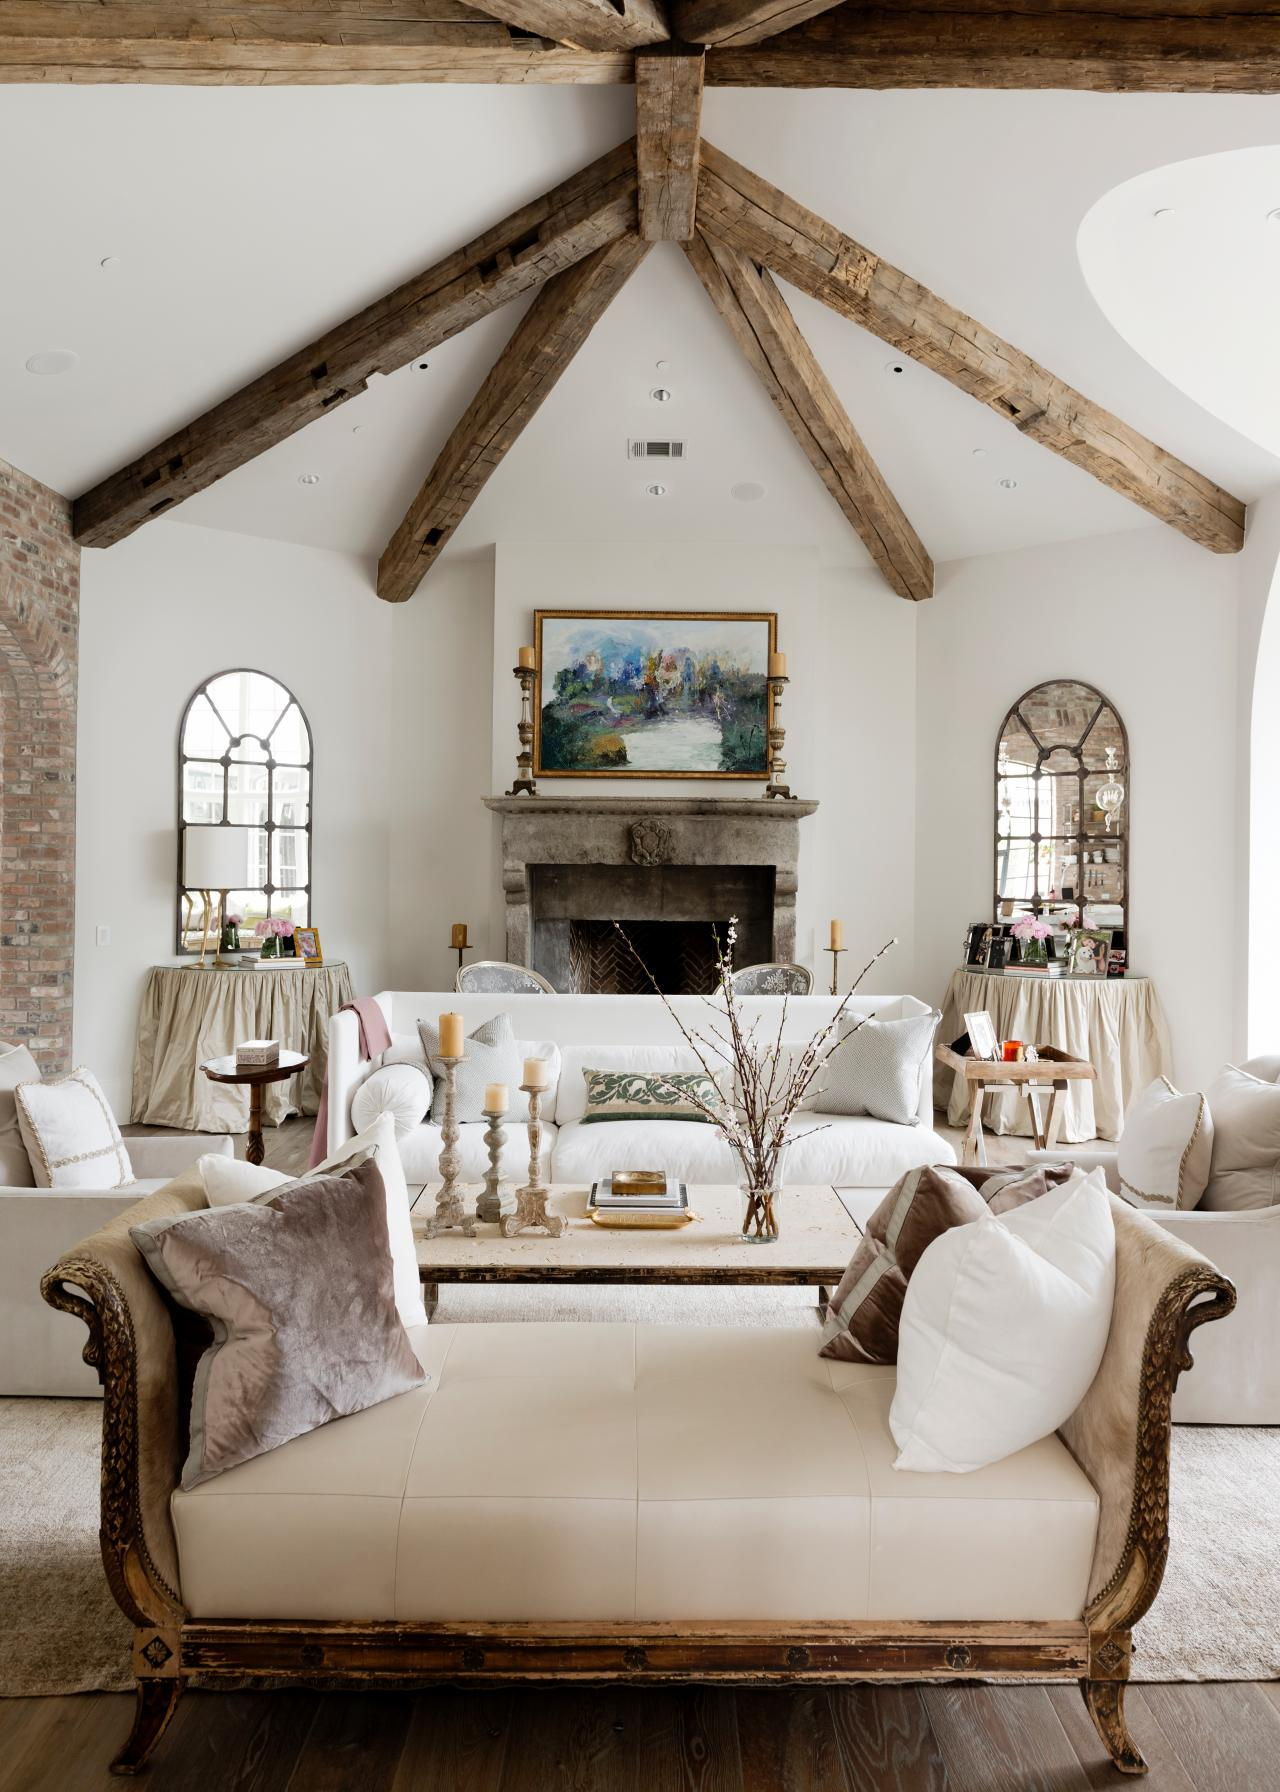 How To Create A Cozy Rustic Feel In Any Room Adorable Home